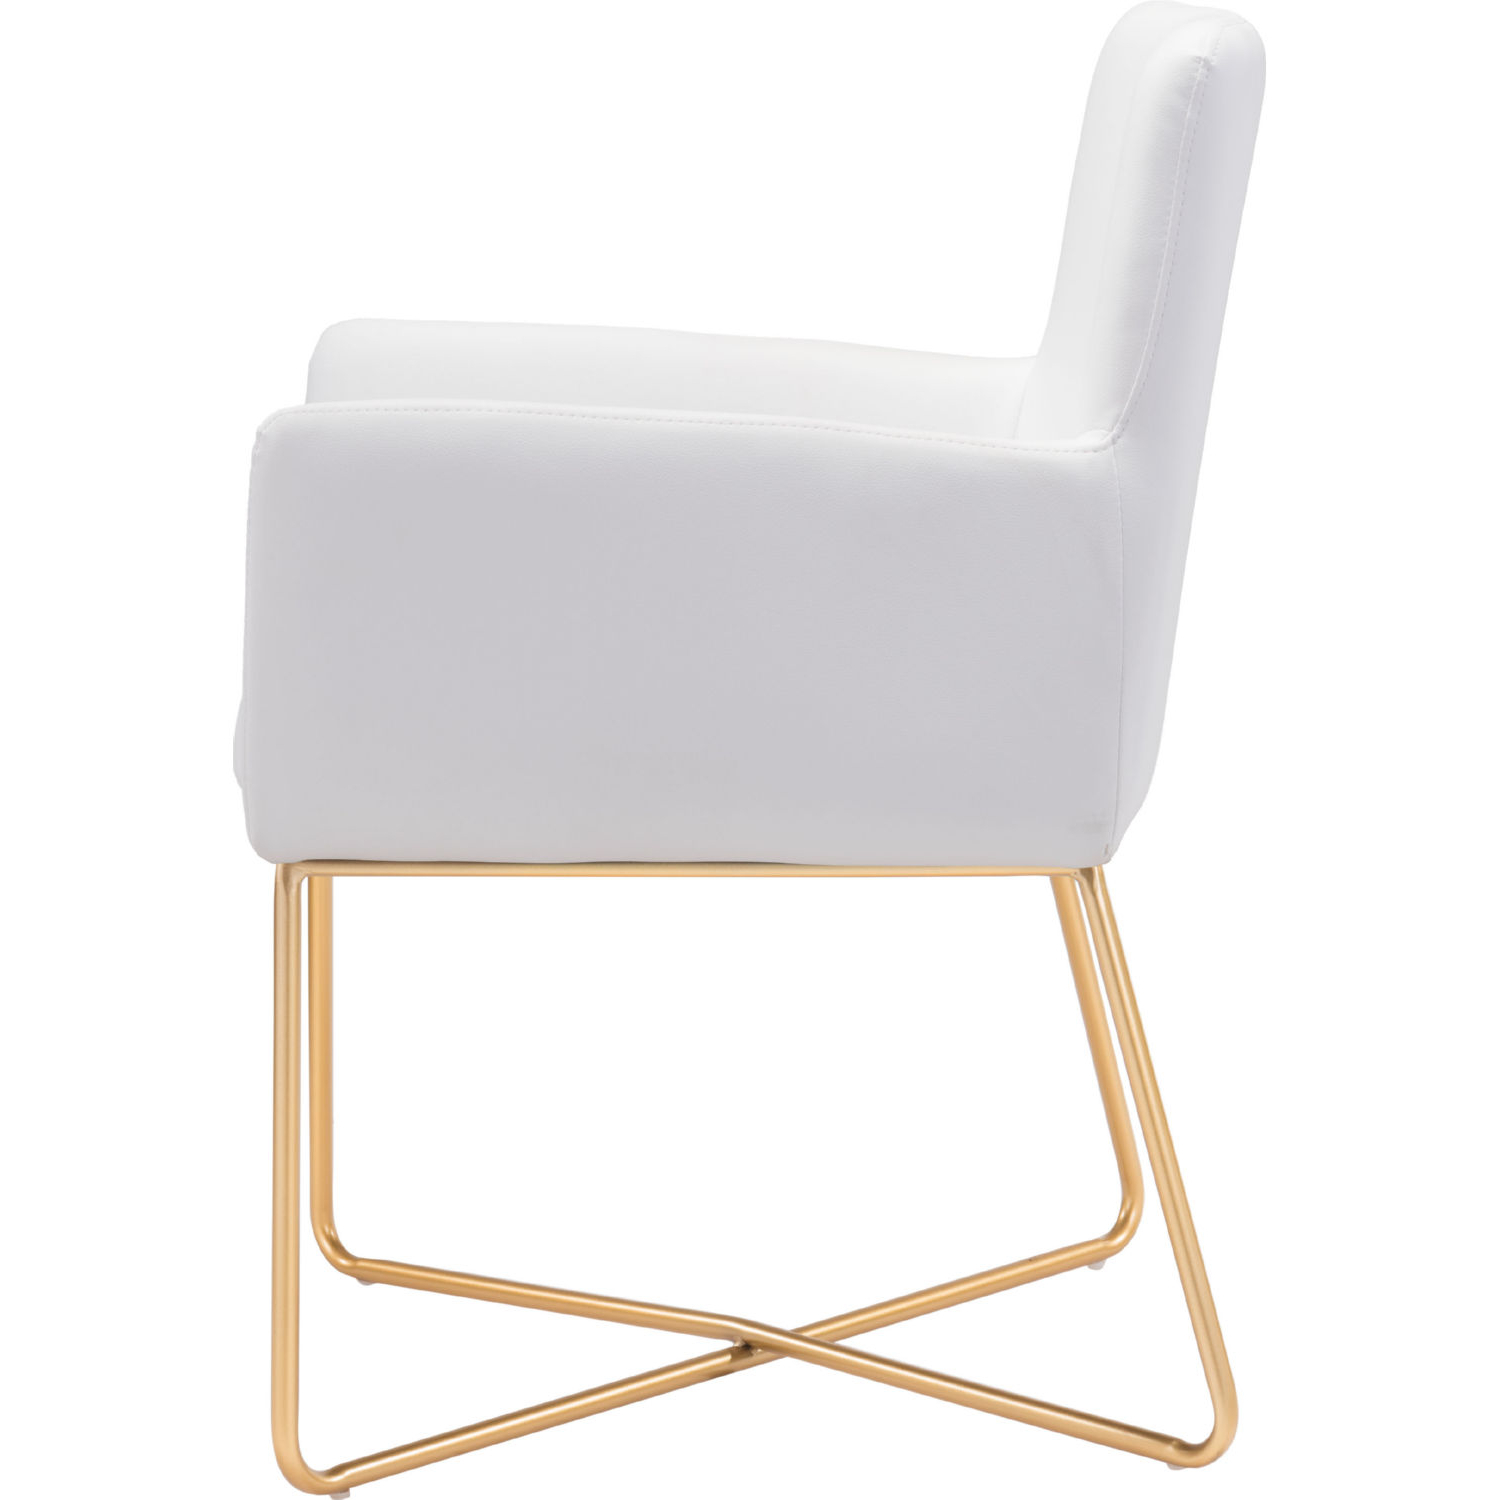 Well Liked Honoria 3 Piece Dining Sets Intended For Zuo 101147 Honoria Arm Chair In White Leatherette On Gold Metal (View 13 of 25)